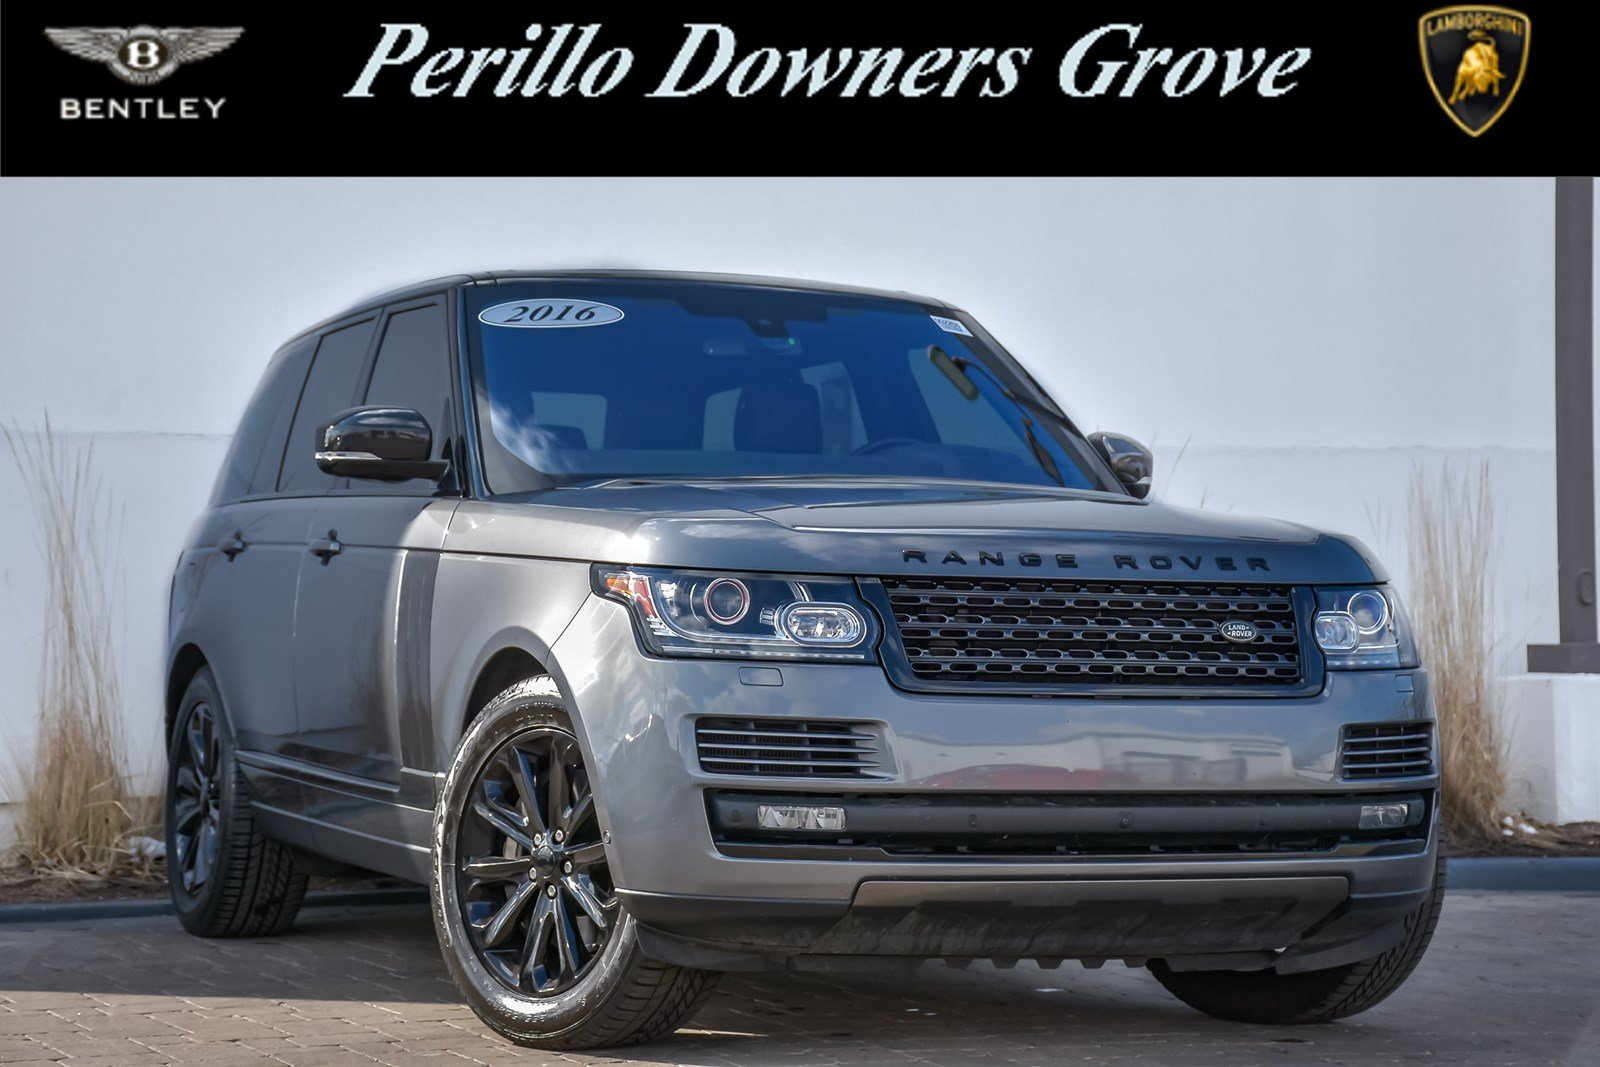 Used Land Rover Range Rover Downers Grove Il